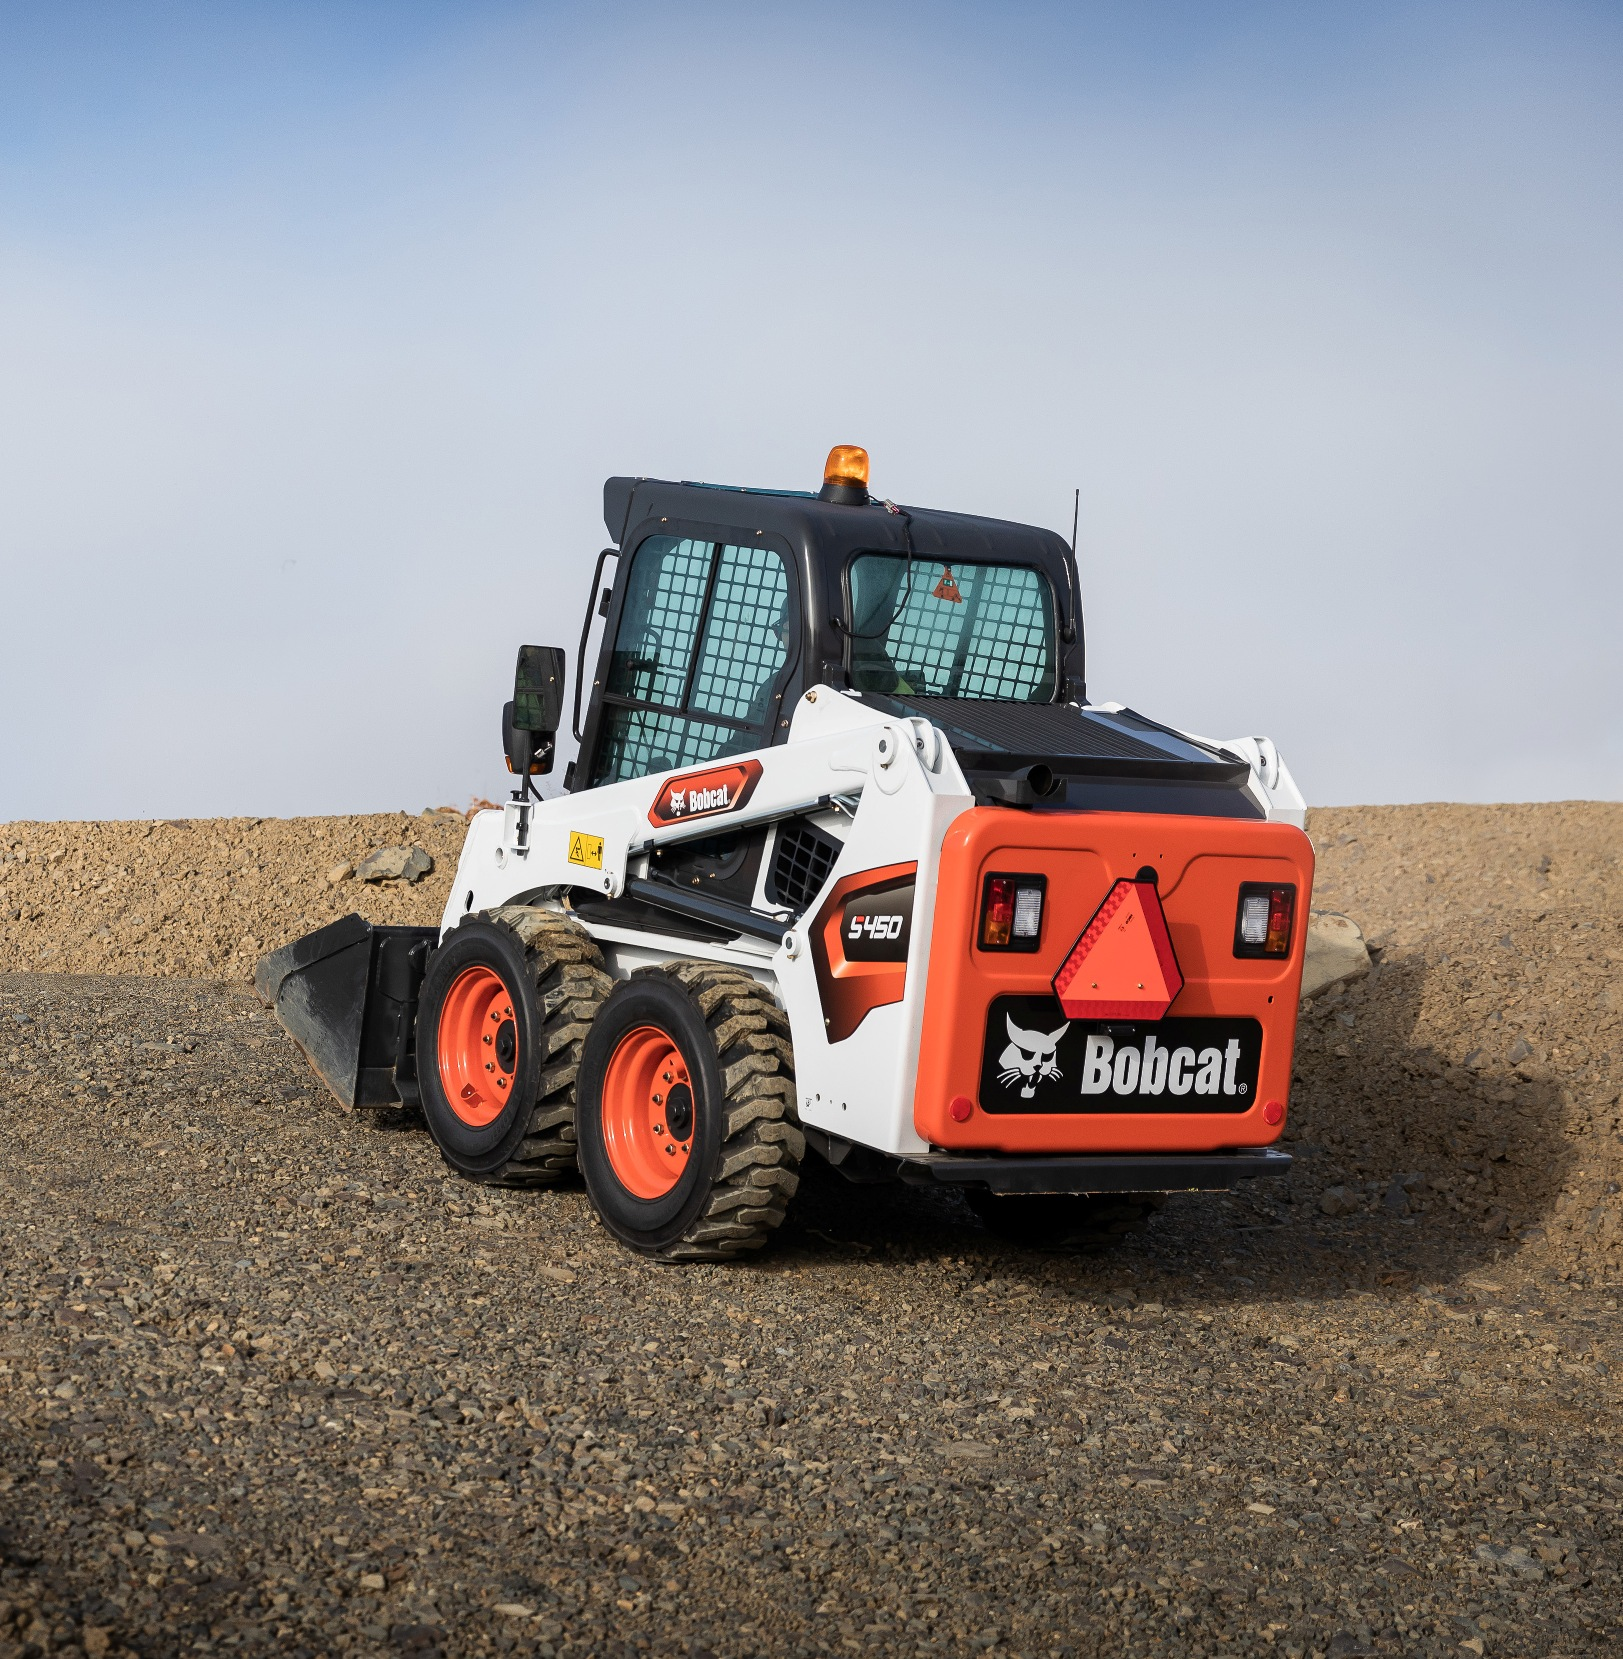 Bobcat Introduces Its New M Series Skid Steer Loaders At Agritechnica 2019 Construction Business News Middle East